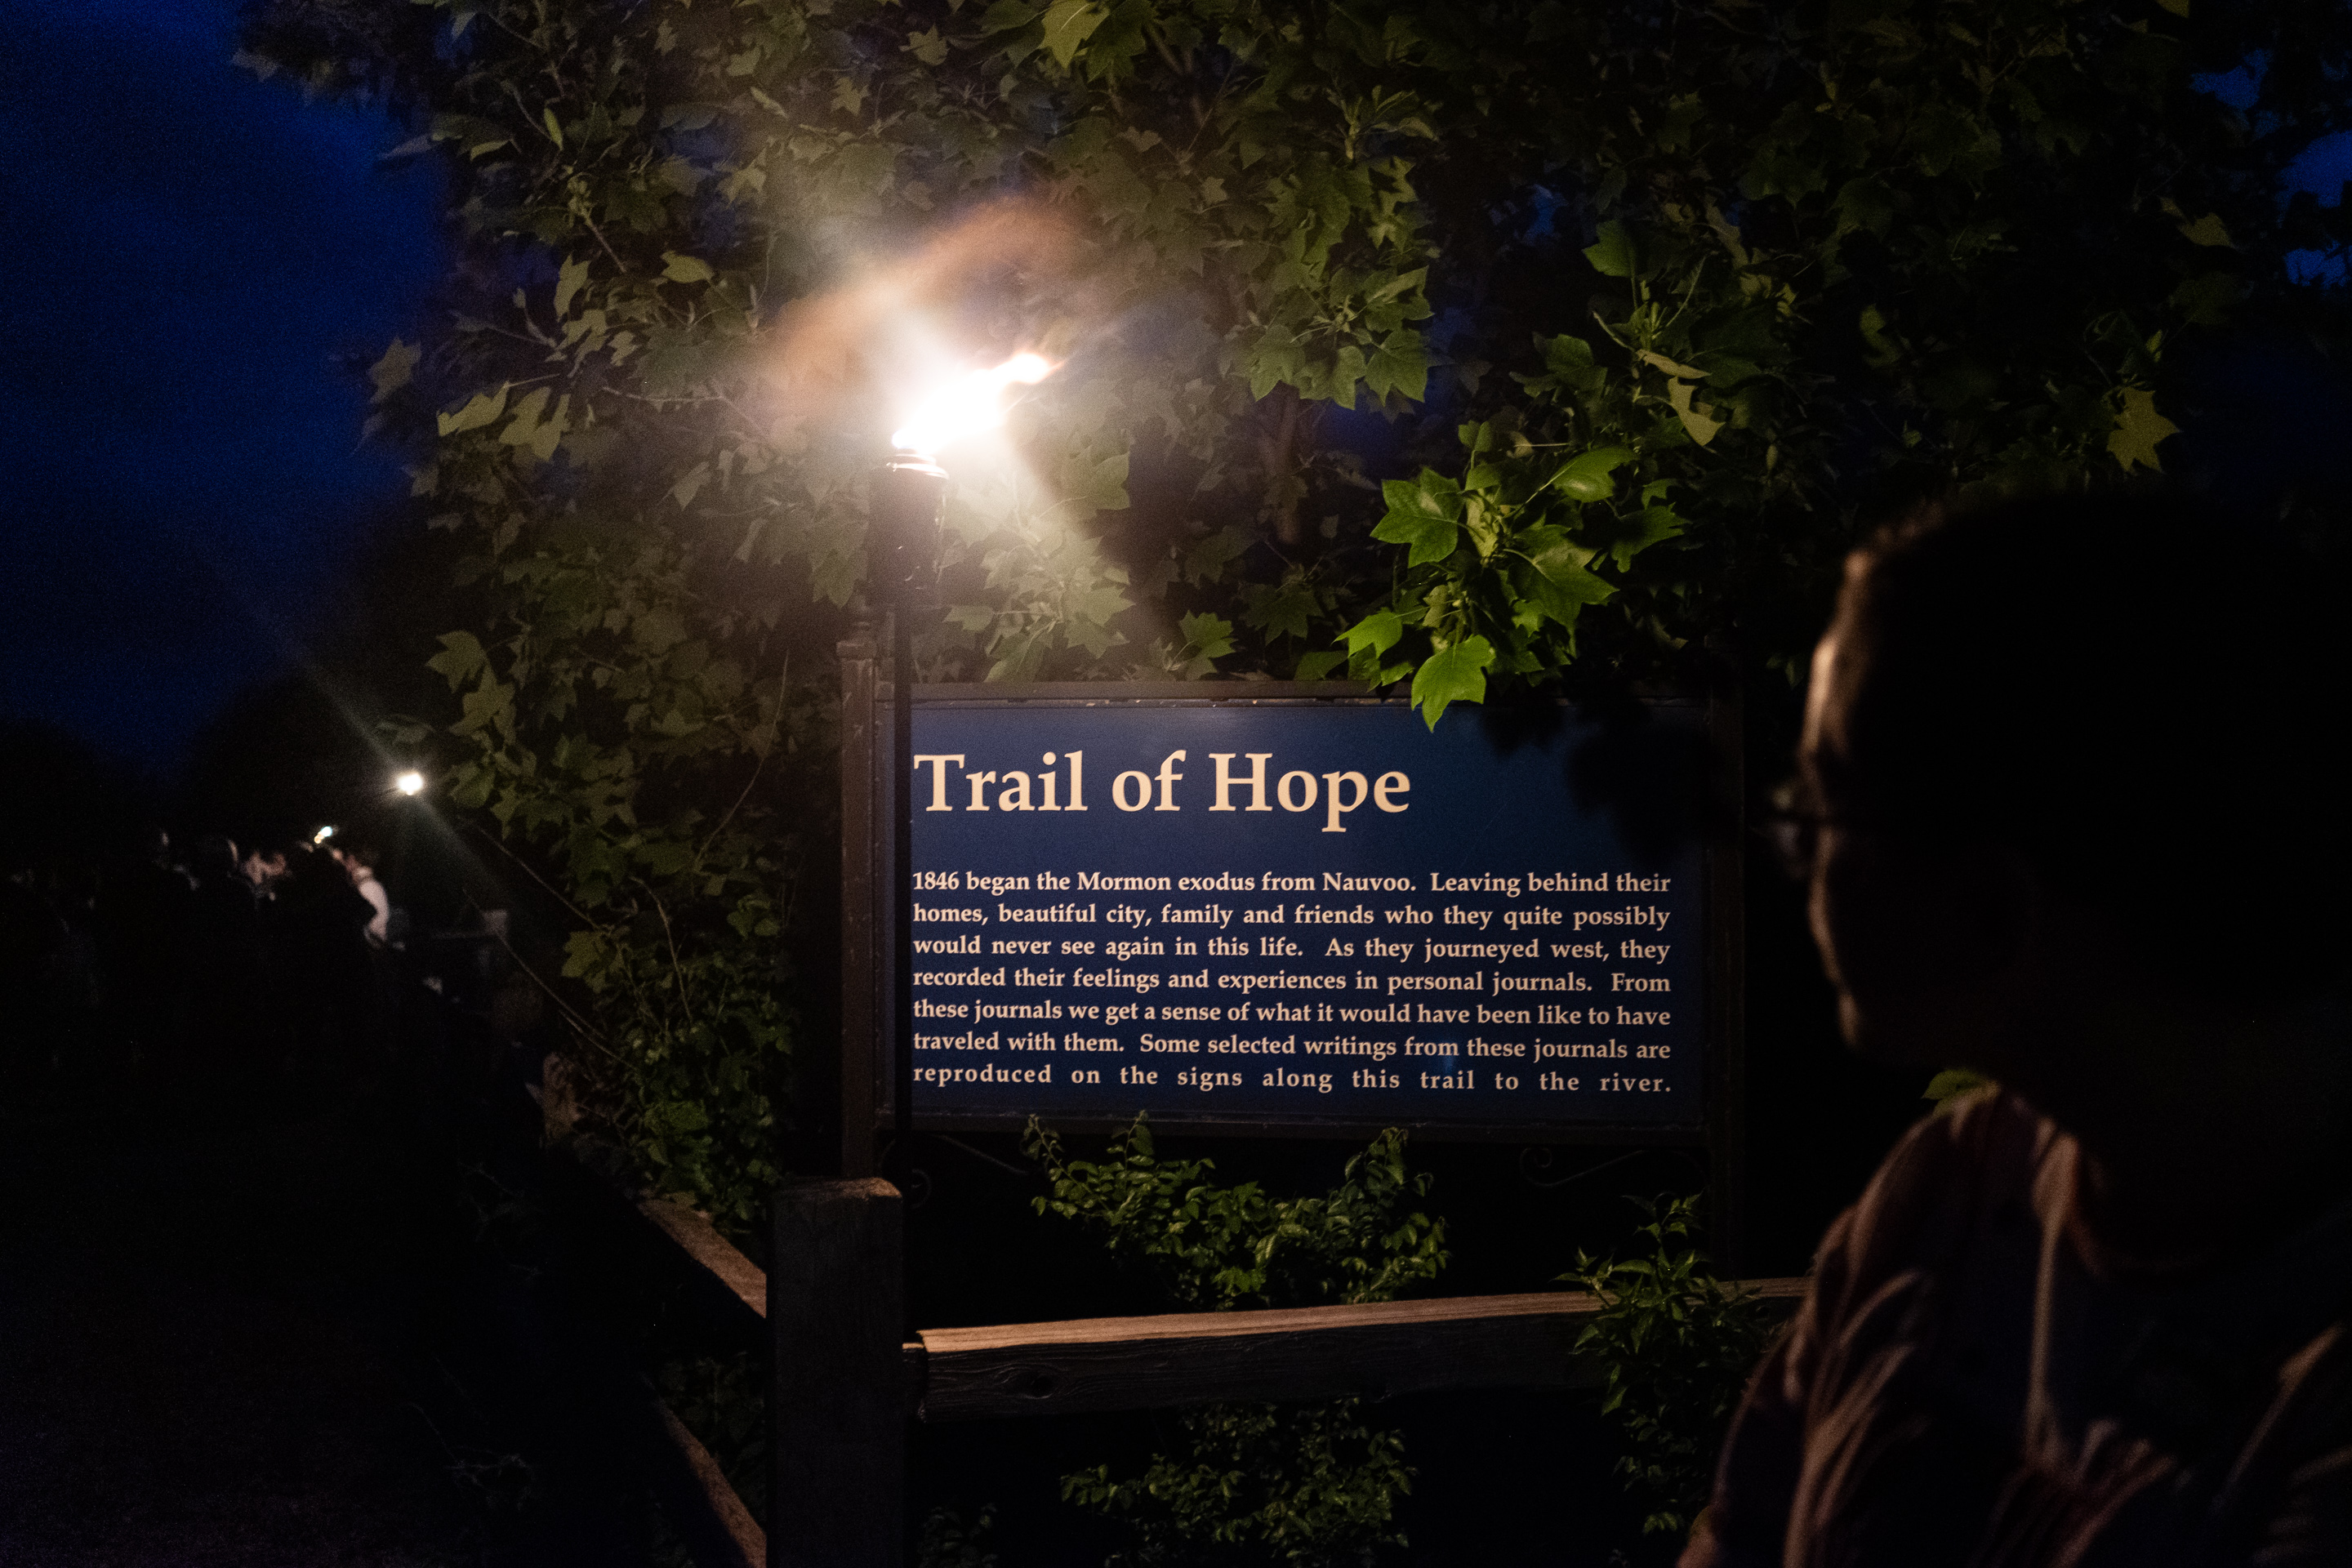 Trail of Hope performative evening, Historic Nauvoo, IL, 2019